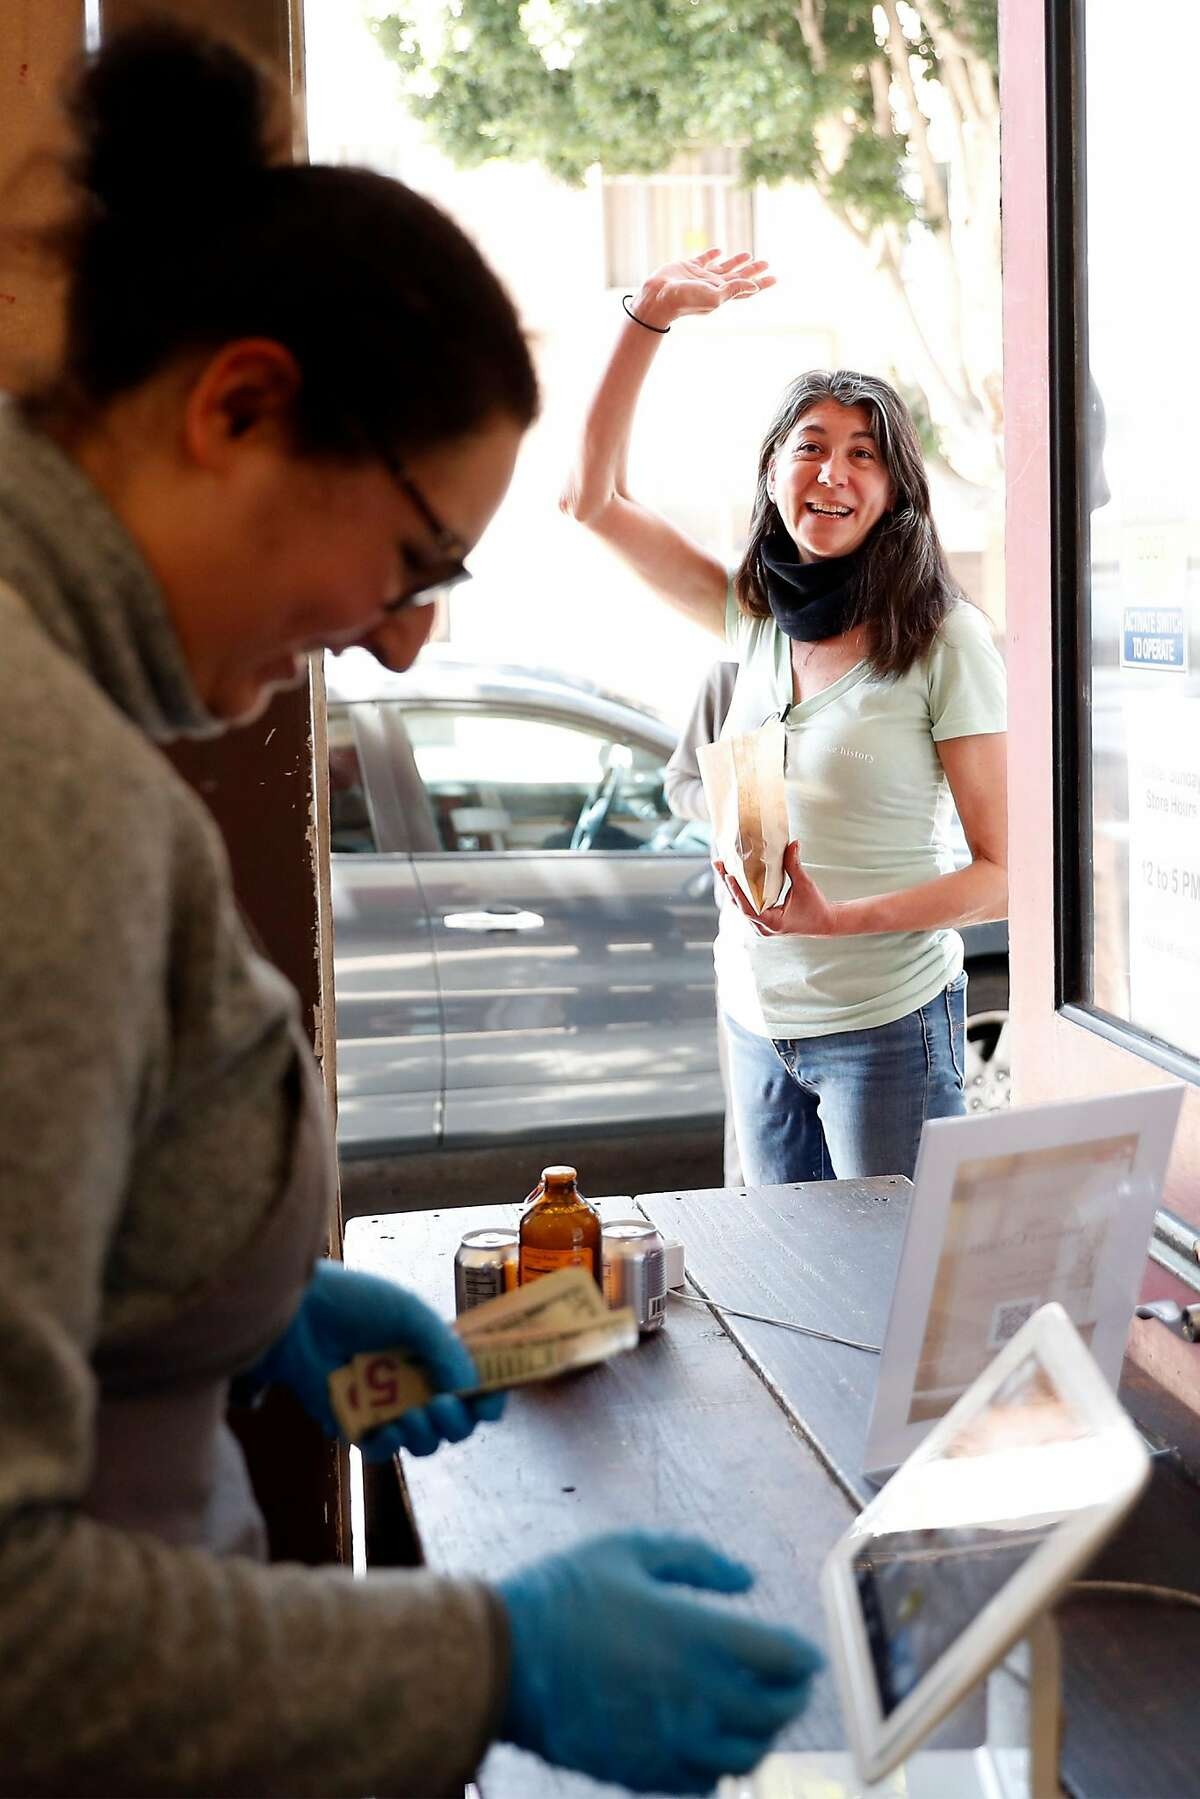 After buying cookies, customer Jennifer Garris waves at owner Anthony Lucas as Camille Renaudon smiles at Anthony's Cookies on Valencia Street in San Francisco, Calif., on Monday, April 13, 2020.